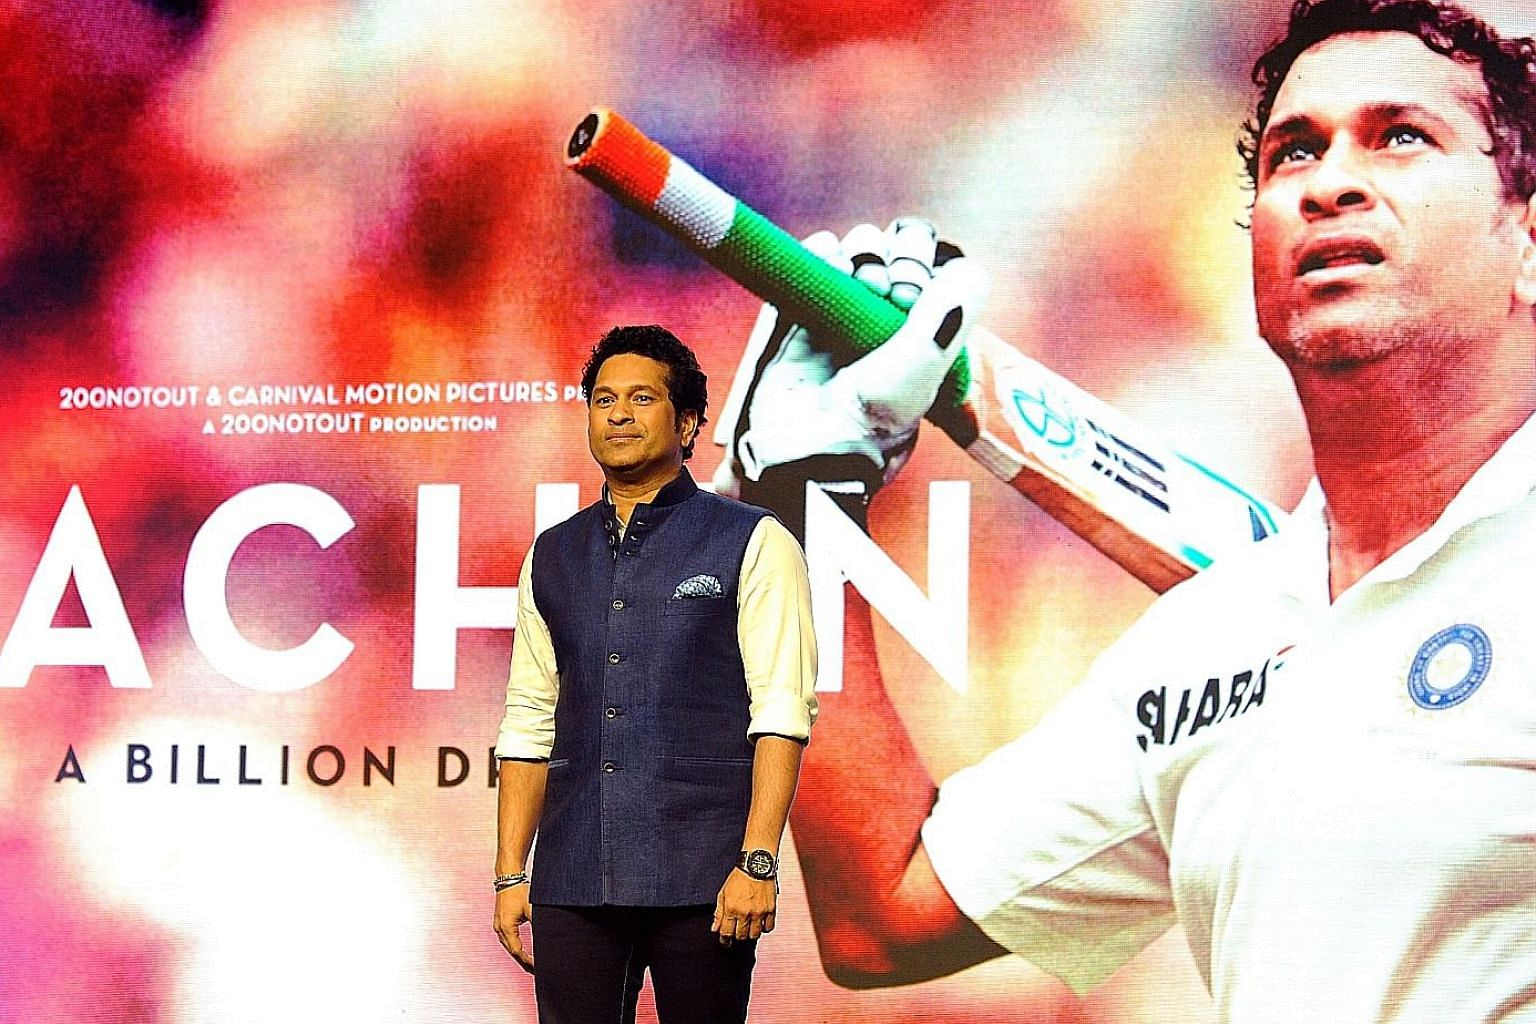 Indian cricket legend Sachin Tendulkar, seen here at a photo call in Mumbai for his forthcoming biopic Sachin: A Billion Dreams.